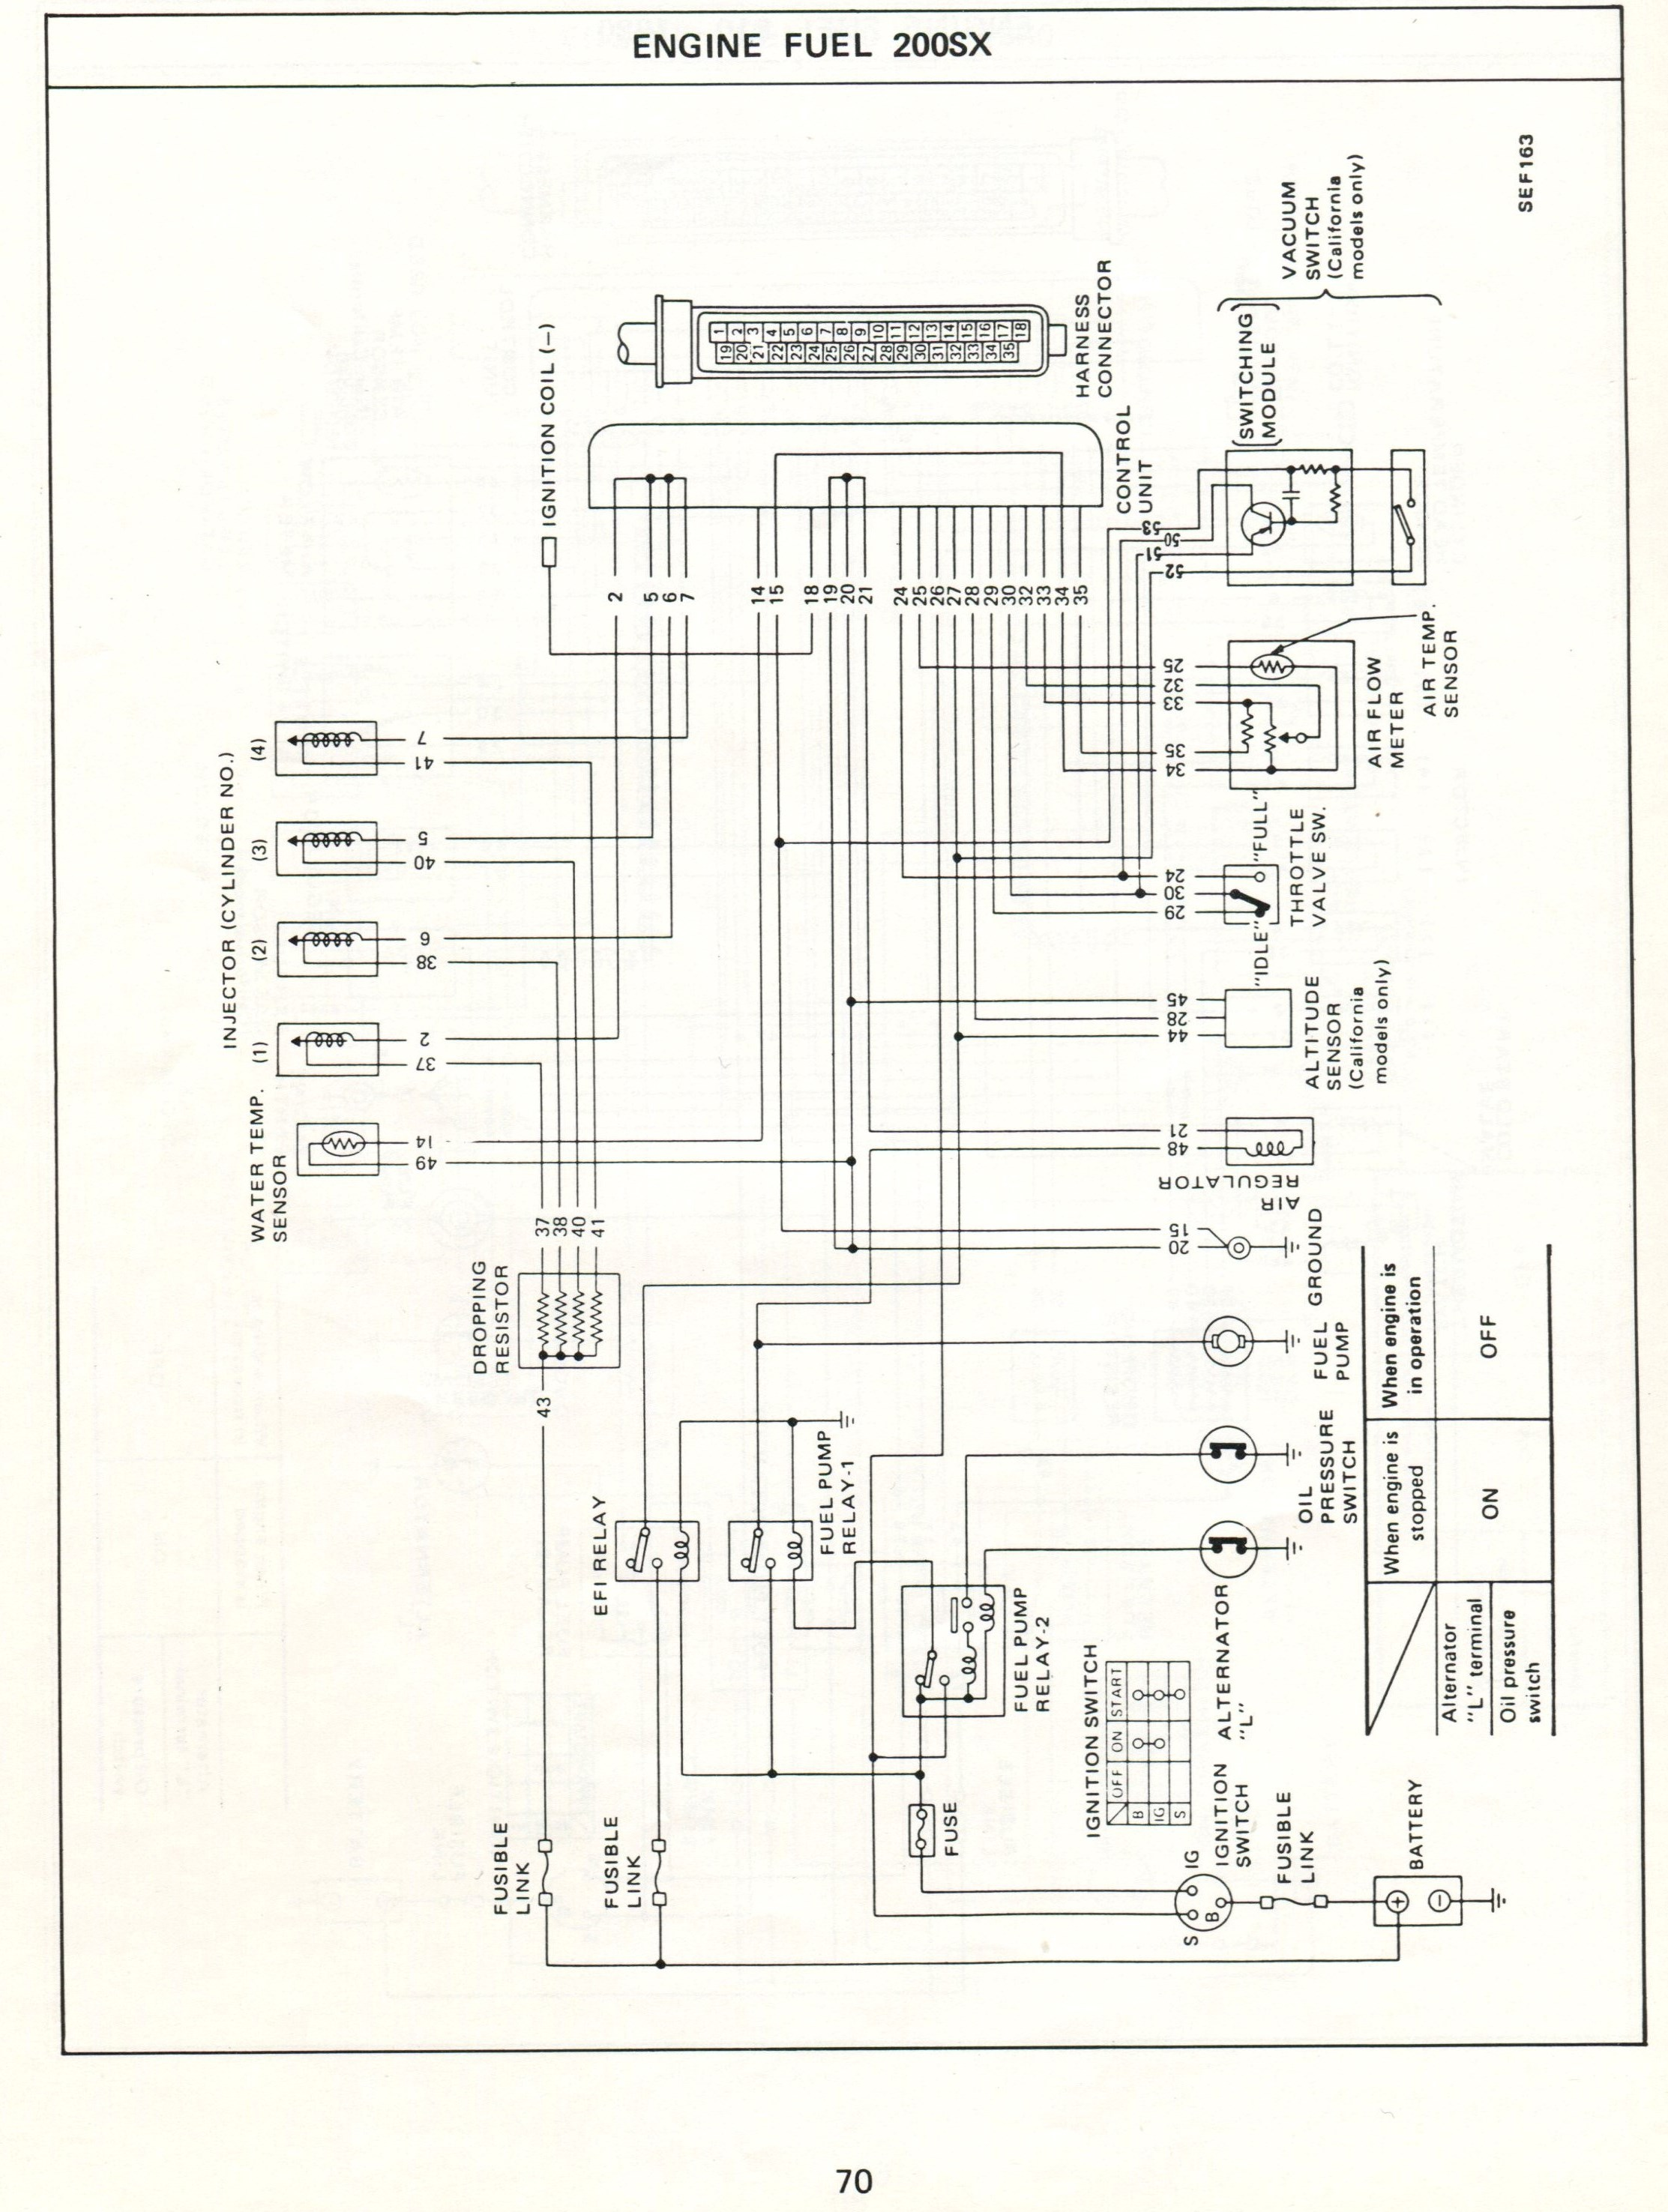 Vw 18t Fuel Diagram